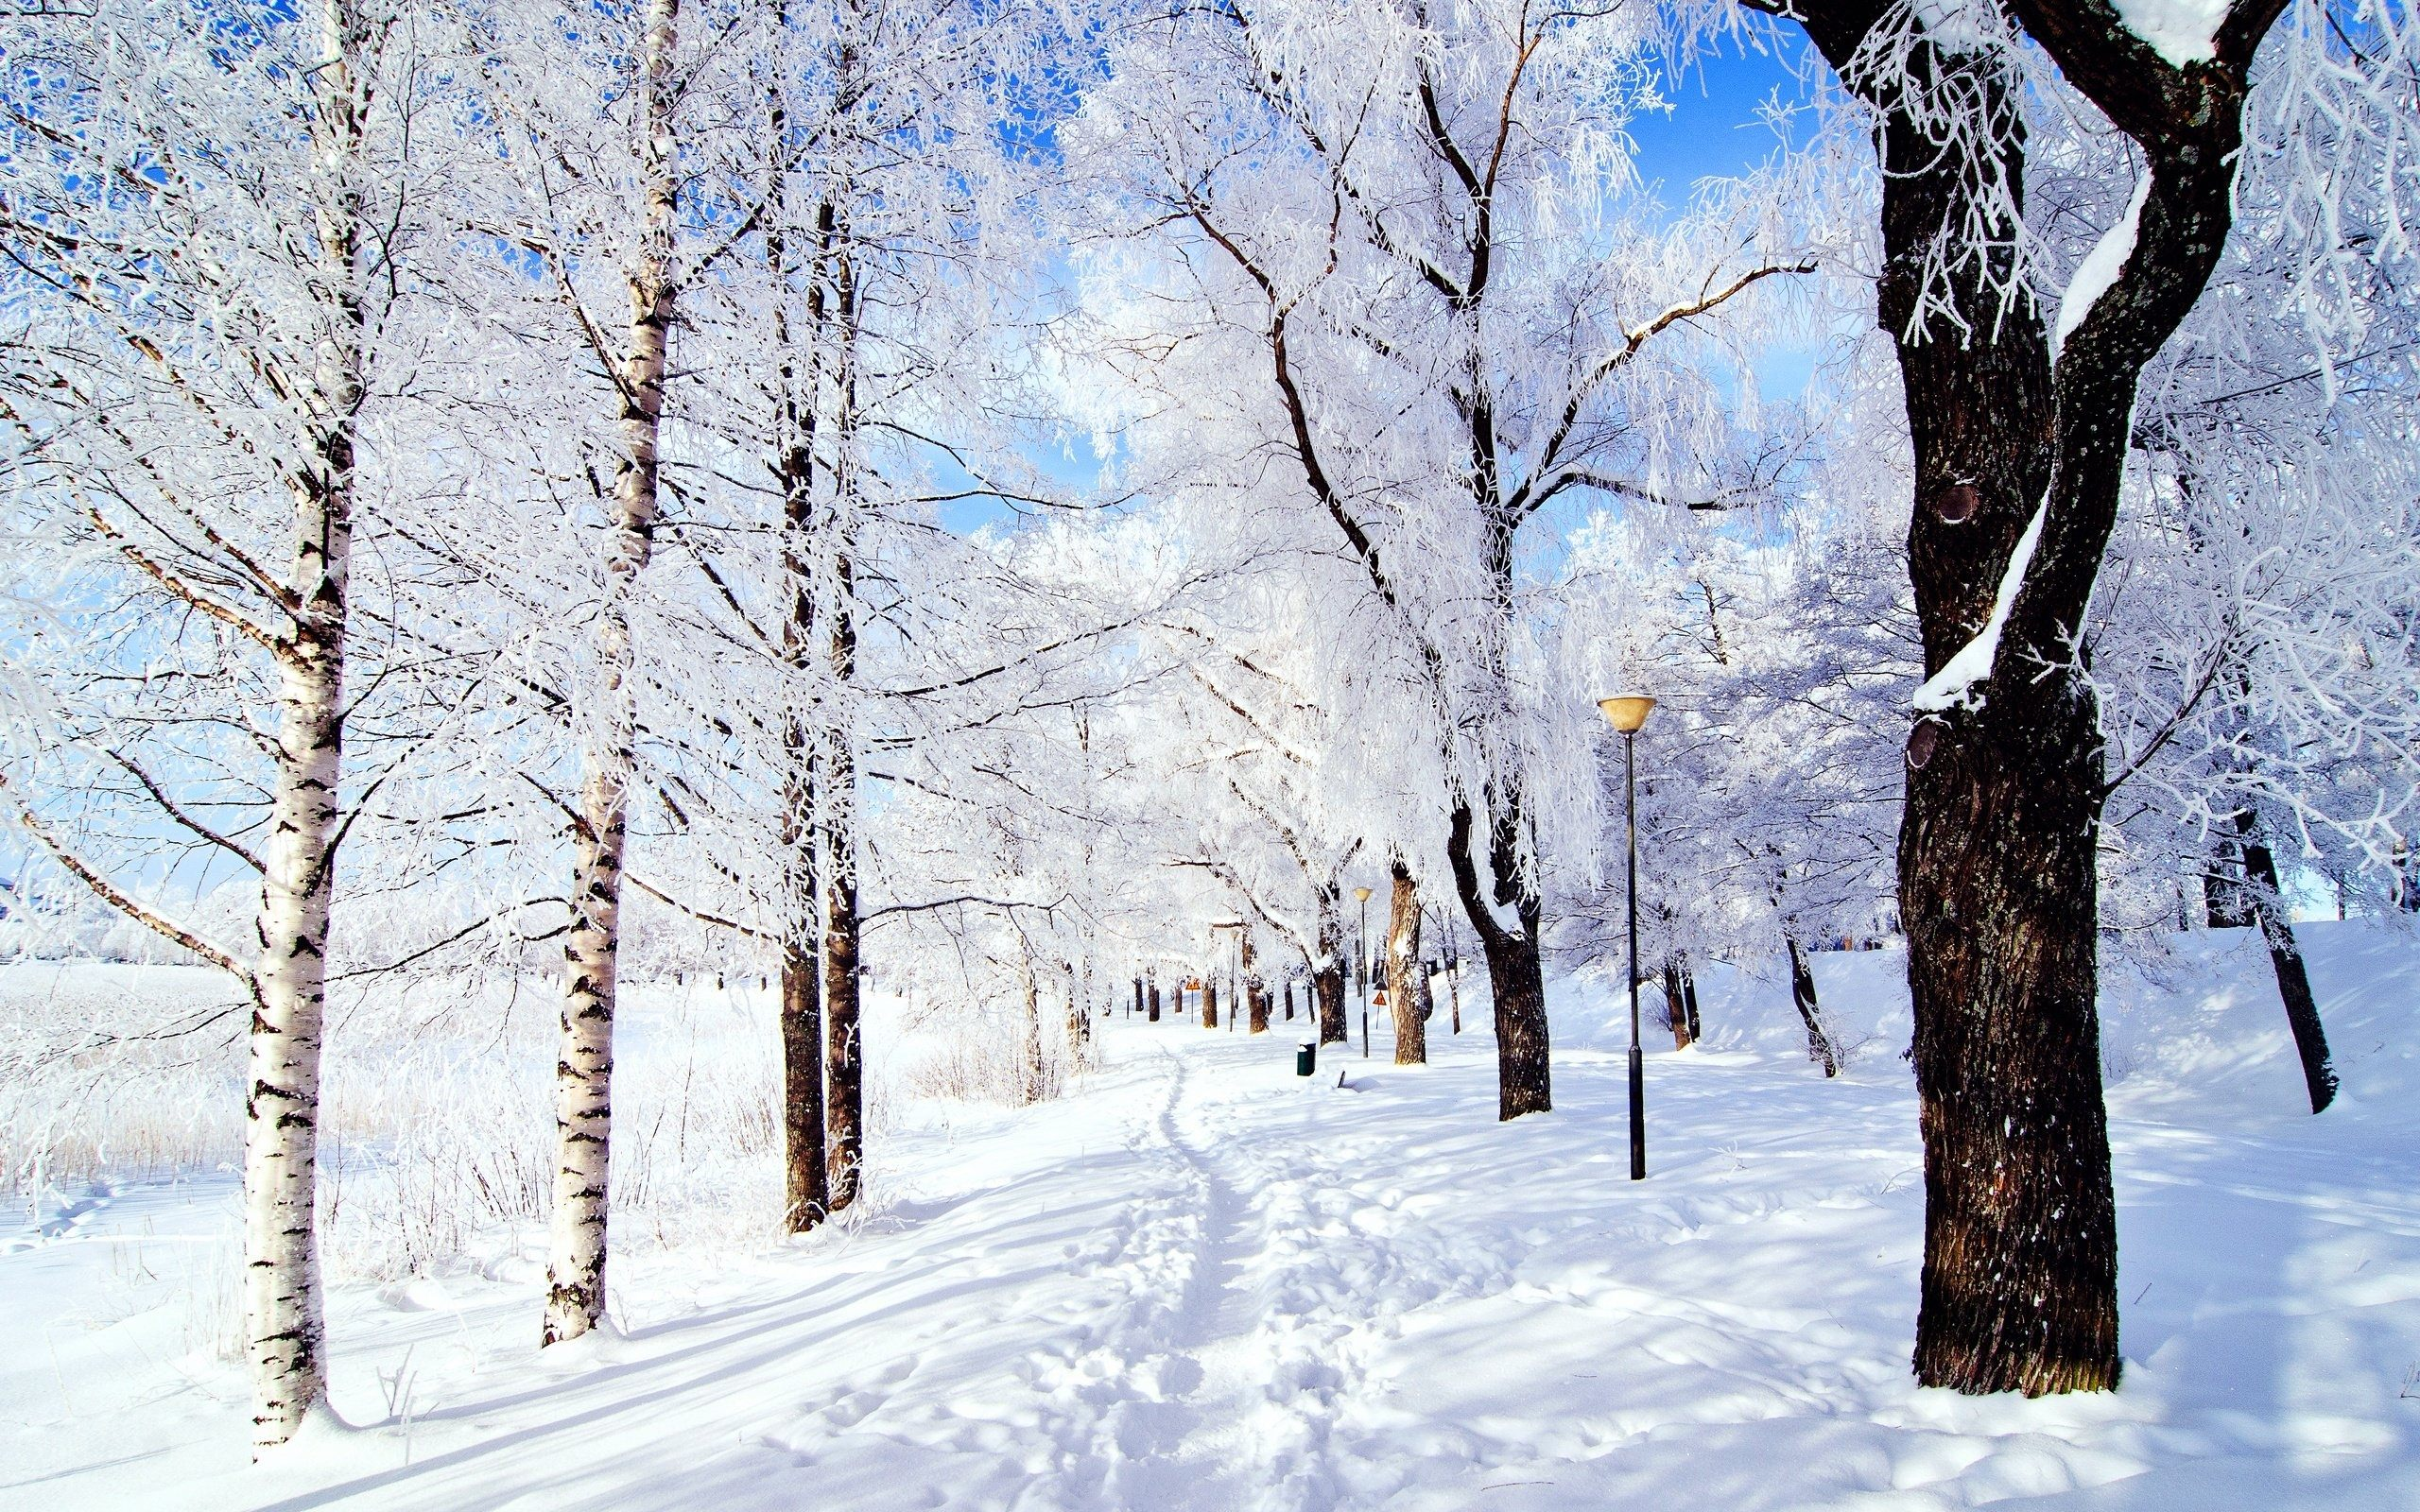 10 snow facts to make you feel festive the list love Beautiful snowfall pictures